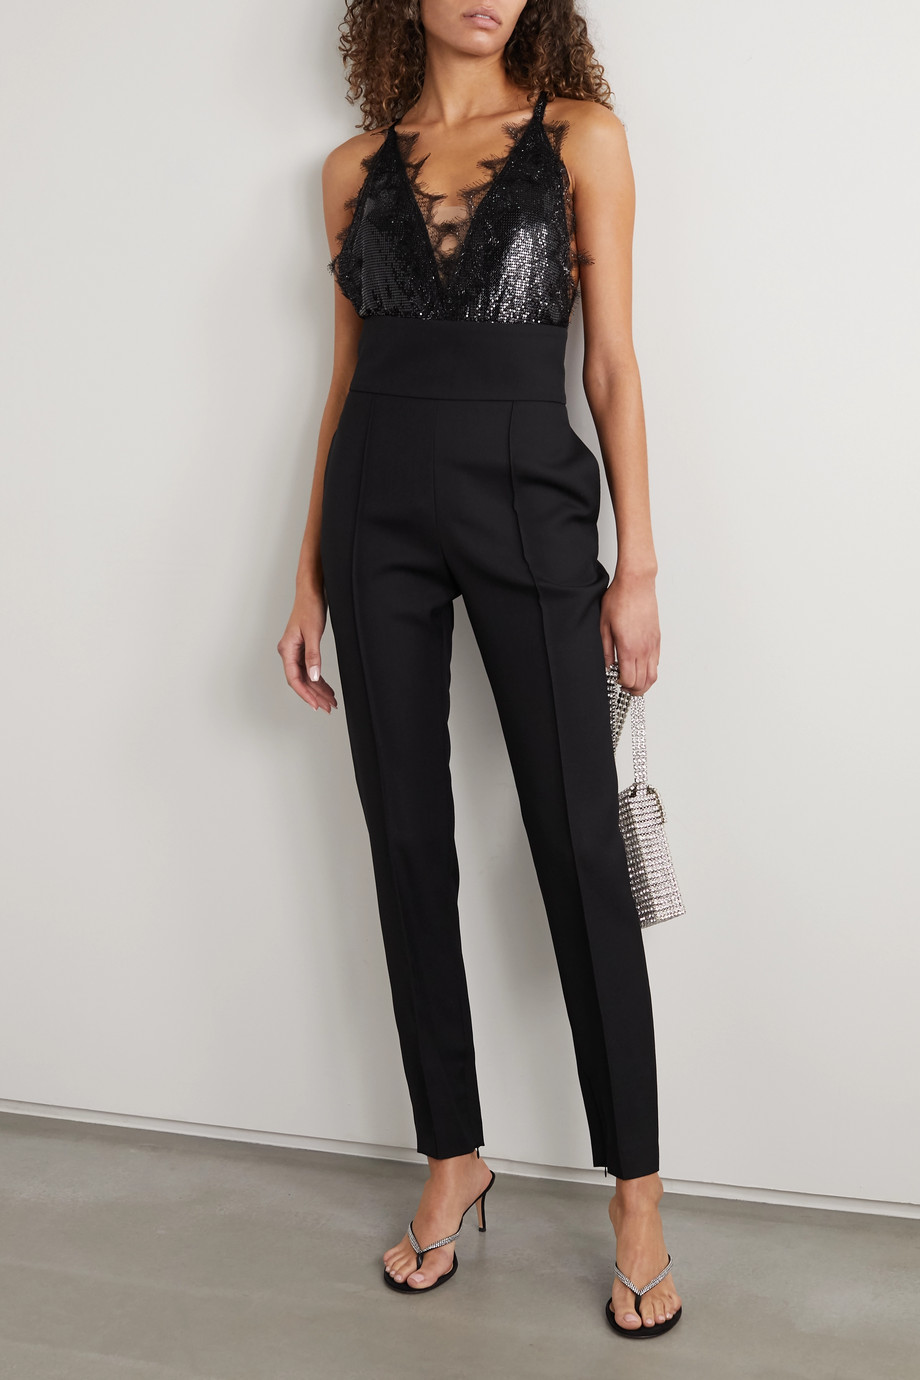 Christopher Kane Lace-trimmed chainmail bodysuit